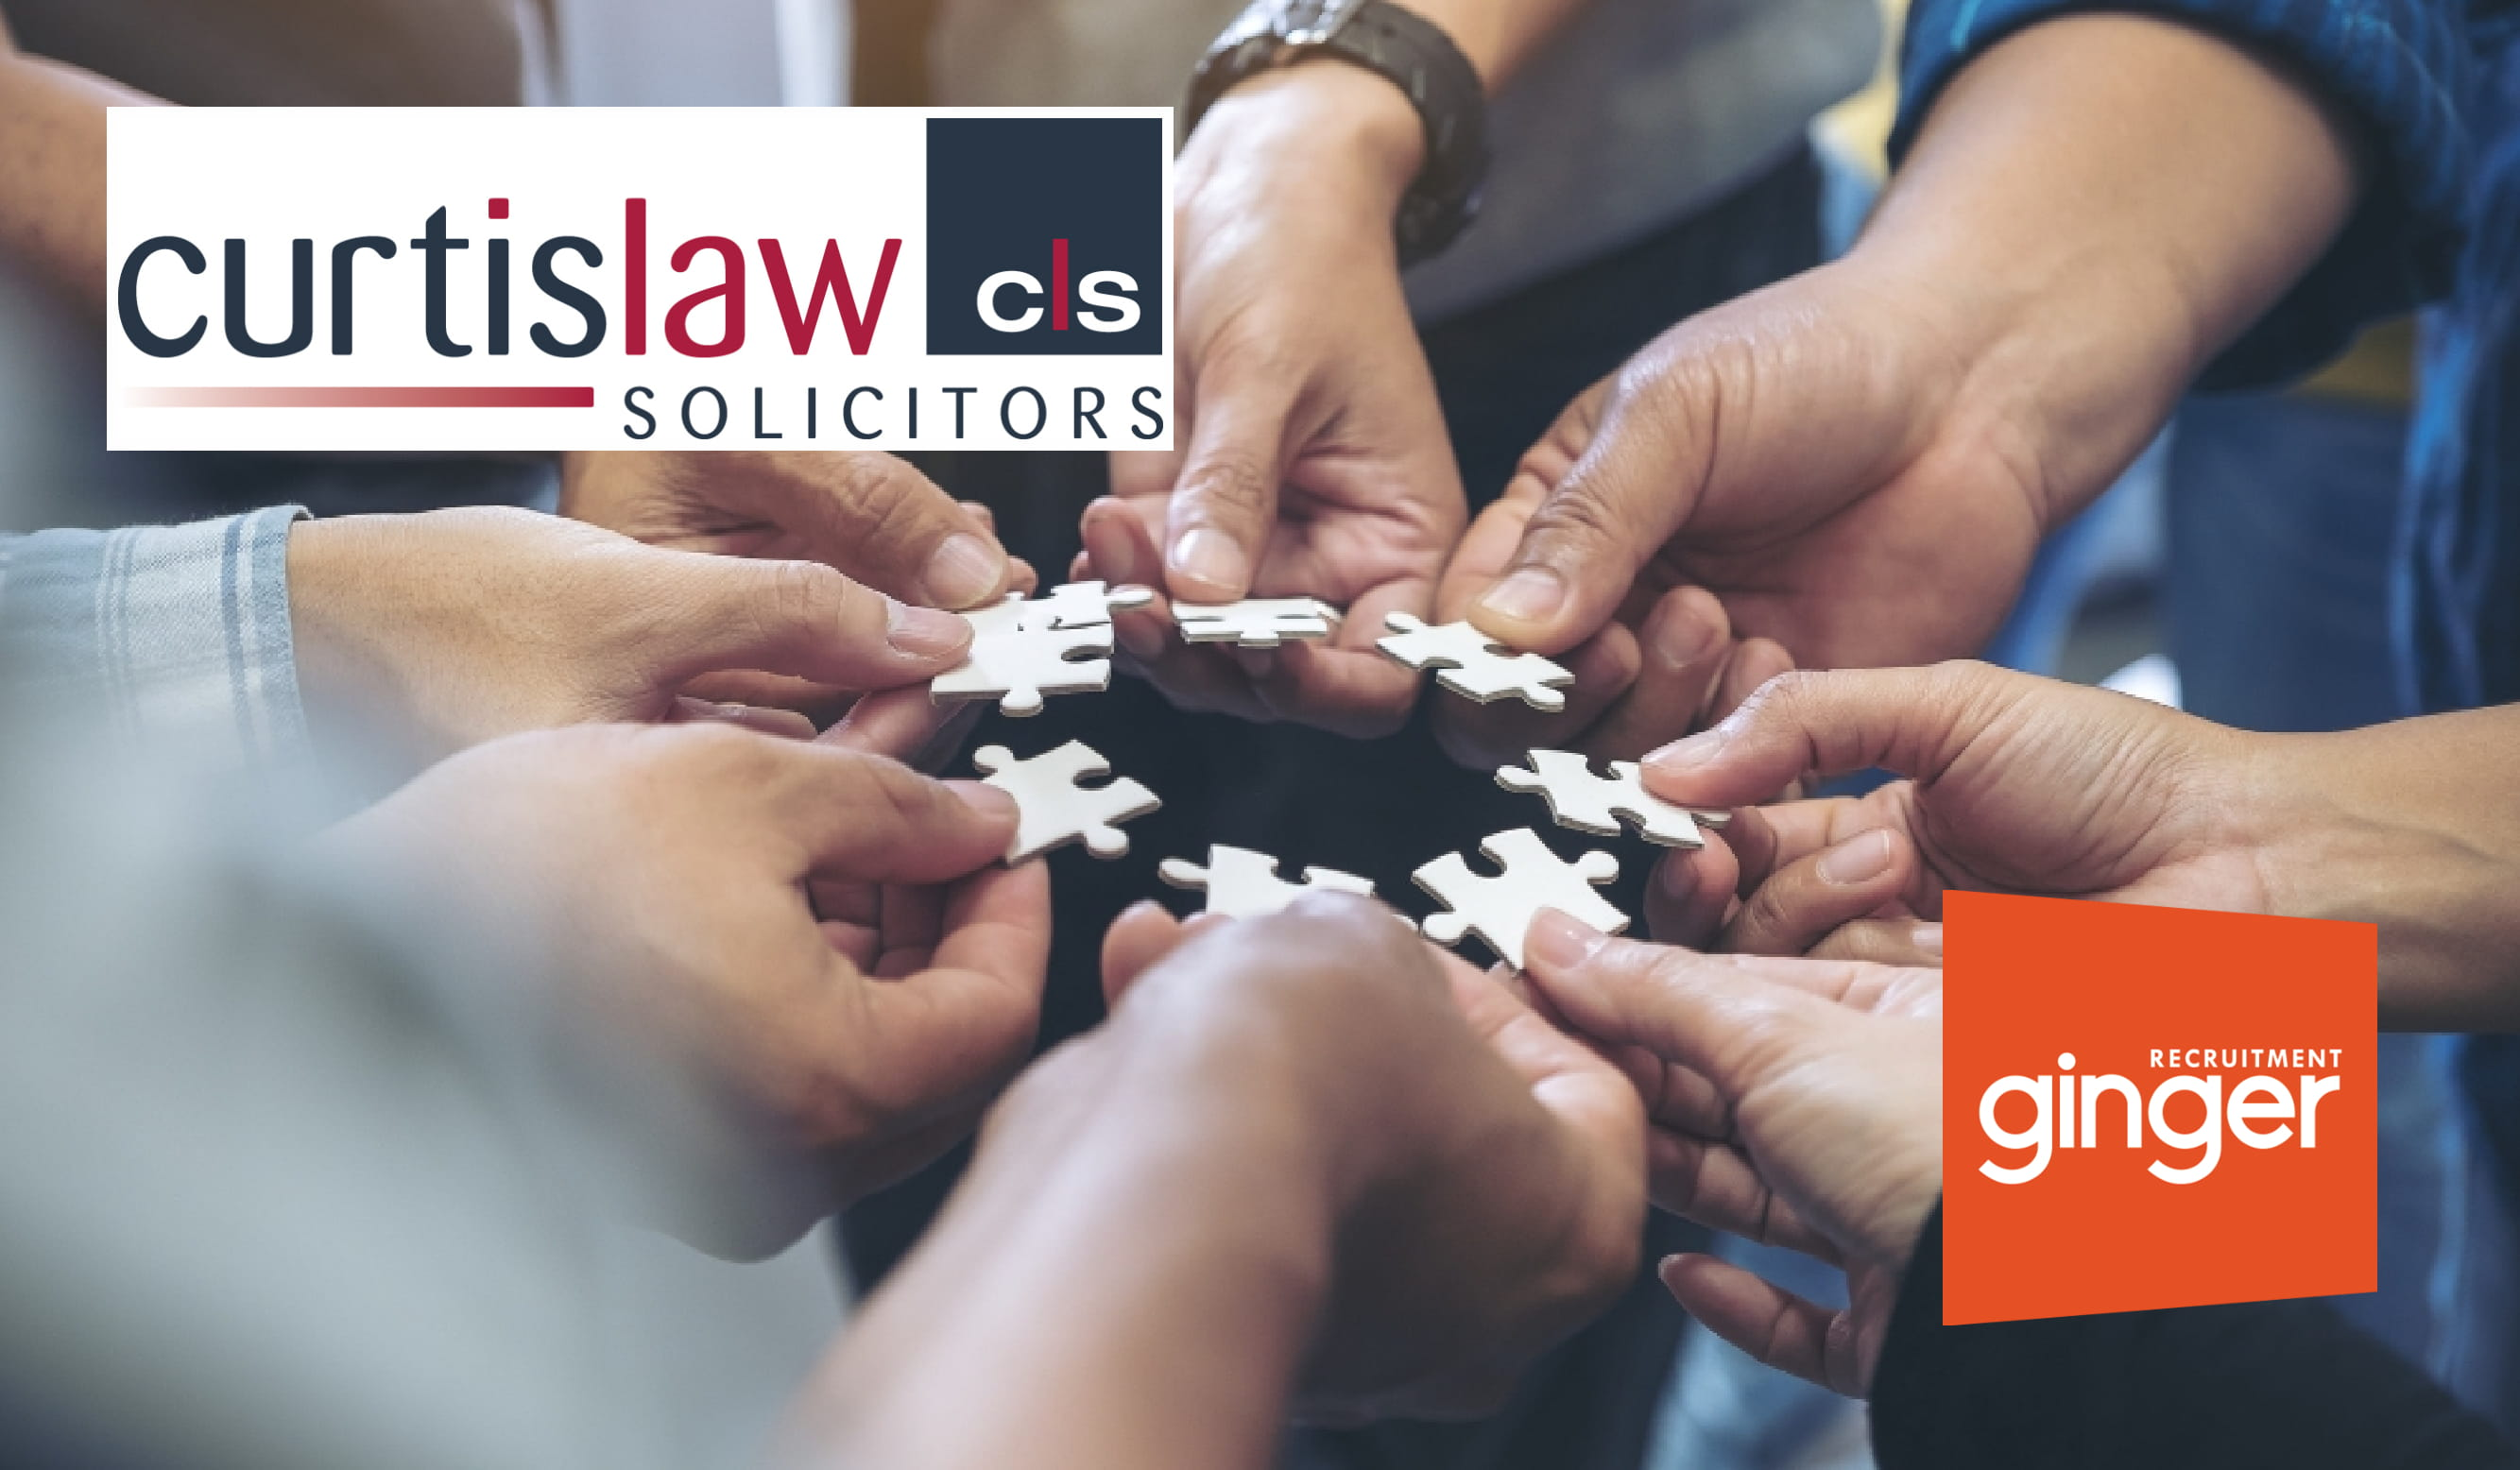 Curtis Law partners with Ginger Recruitment